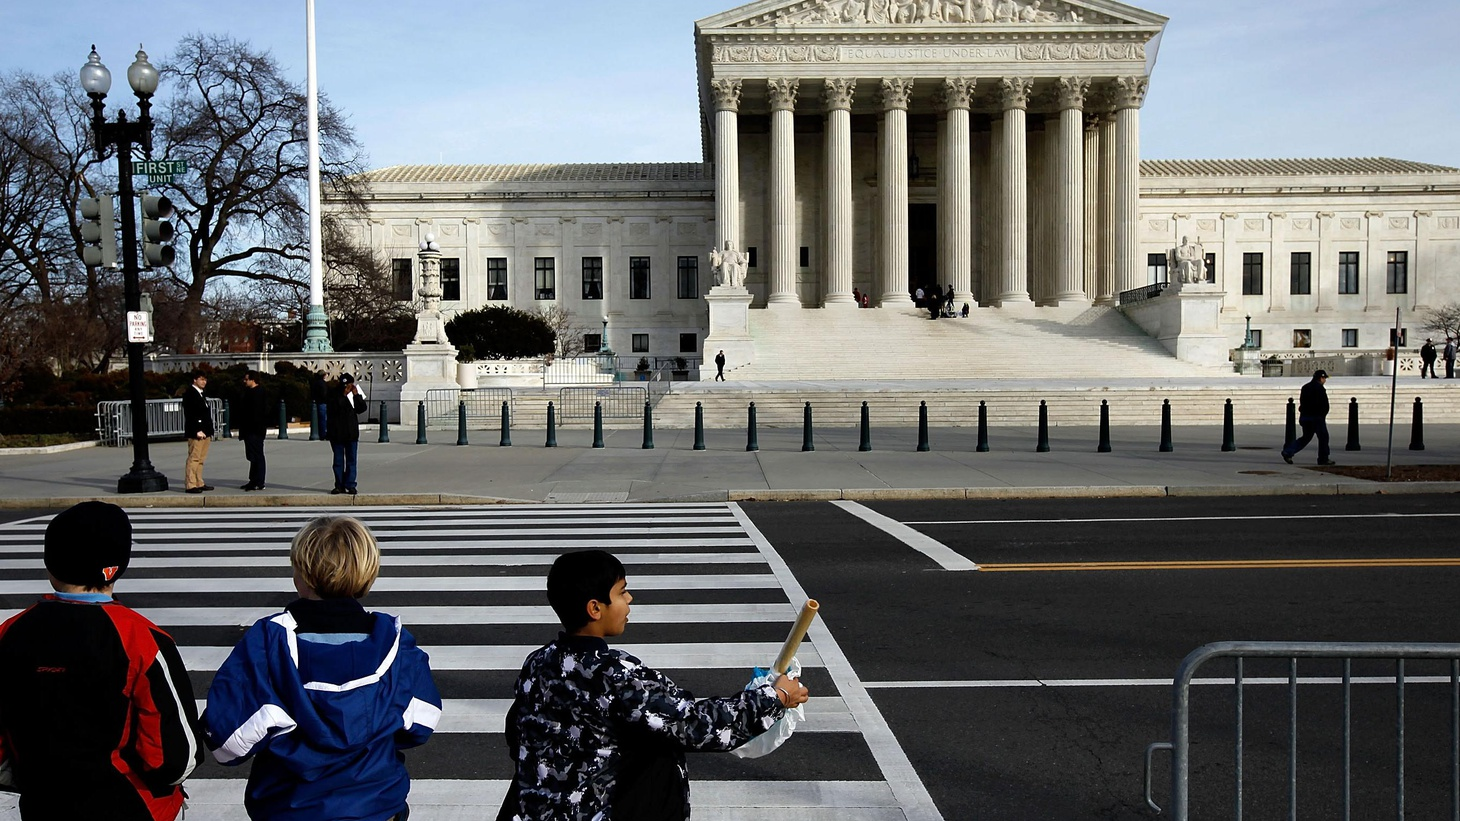 Has the US Supreme Court scored a victory for free speech or increased the influence of money in politics? We hear about last week's 5-to-4 decision on the rights of corporations. Also, executions, bombs and political turmoil in Baghdad, and Haitian refugees and US immigration policy.